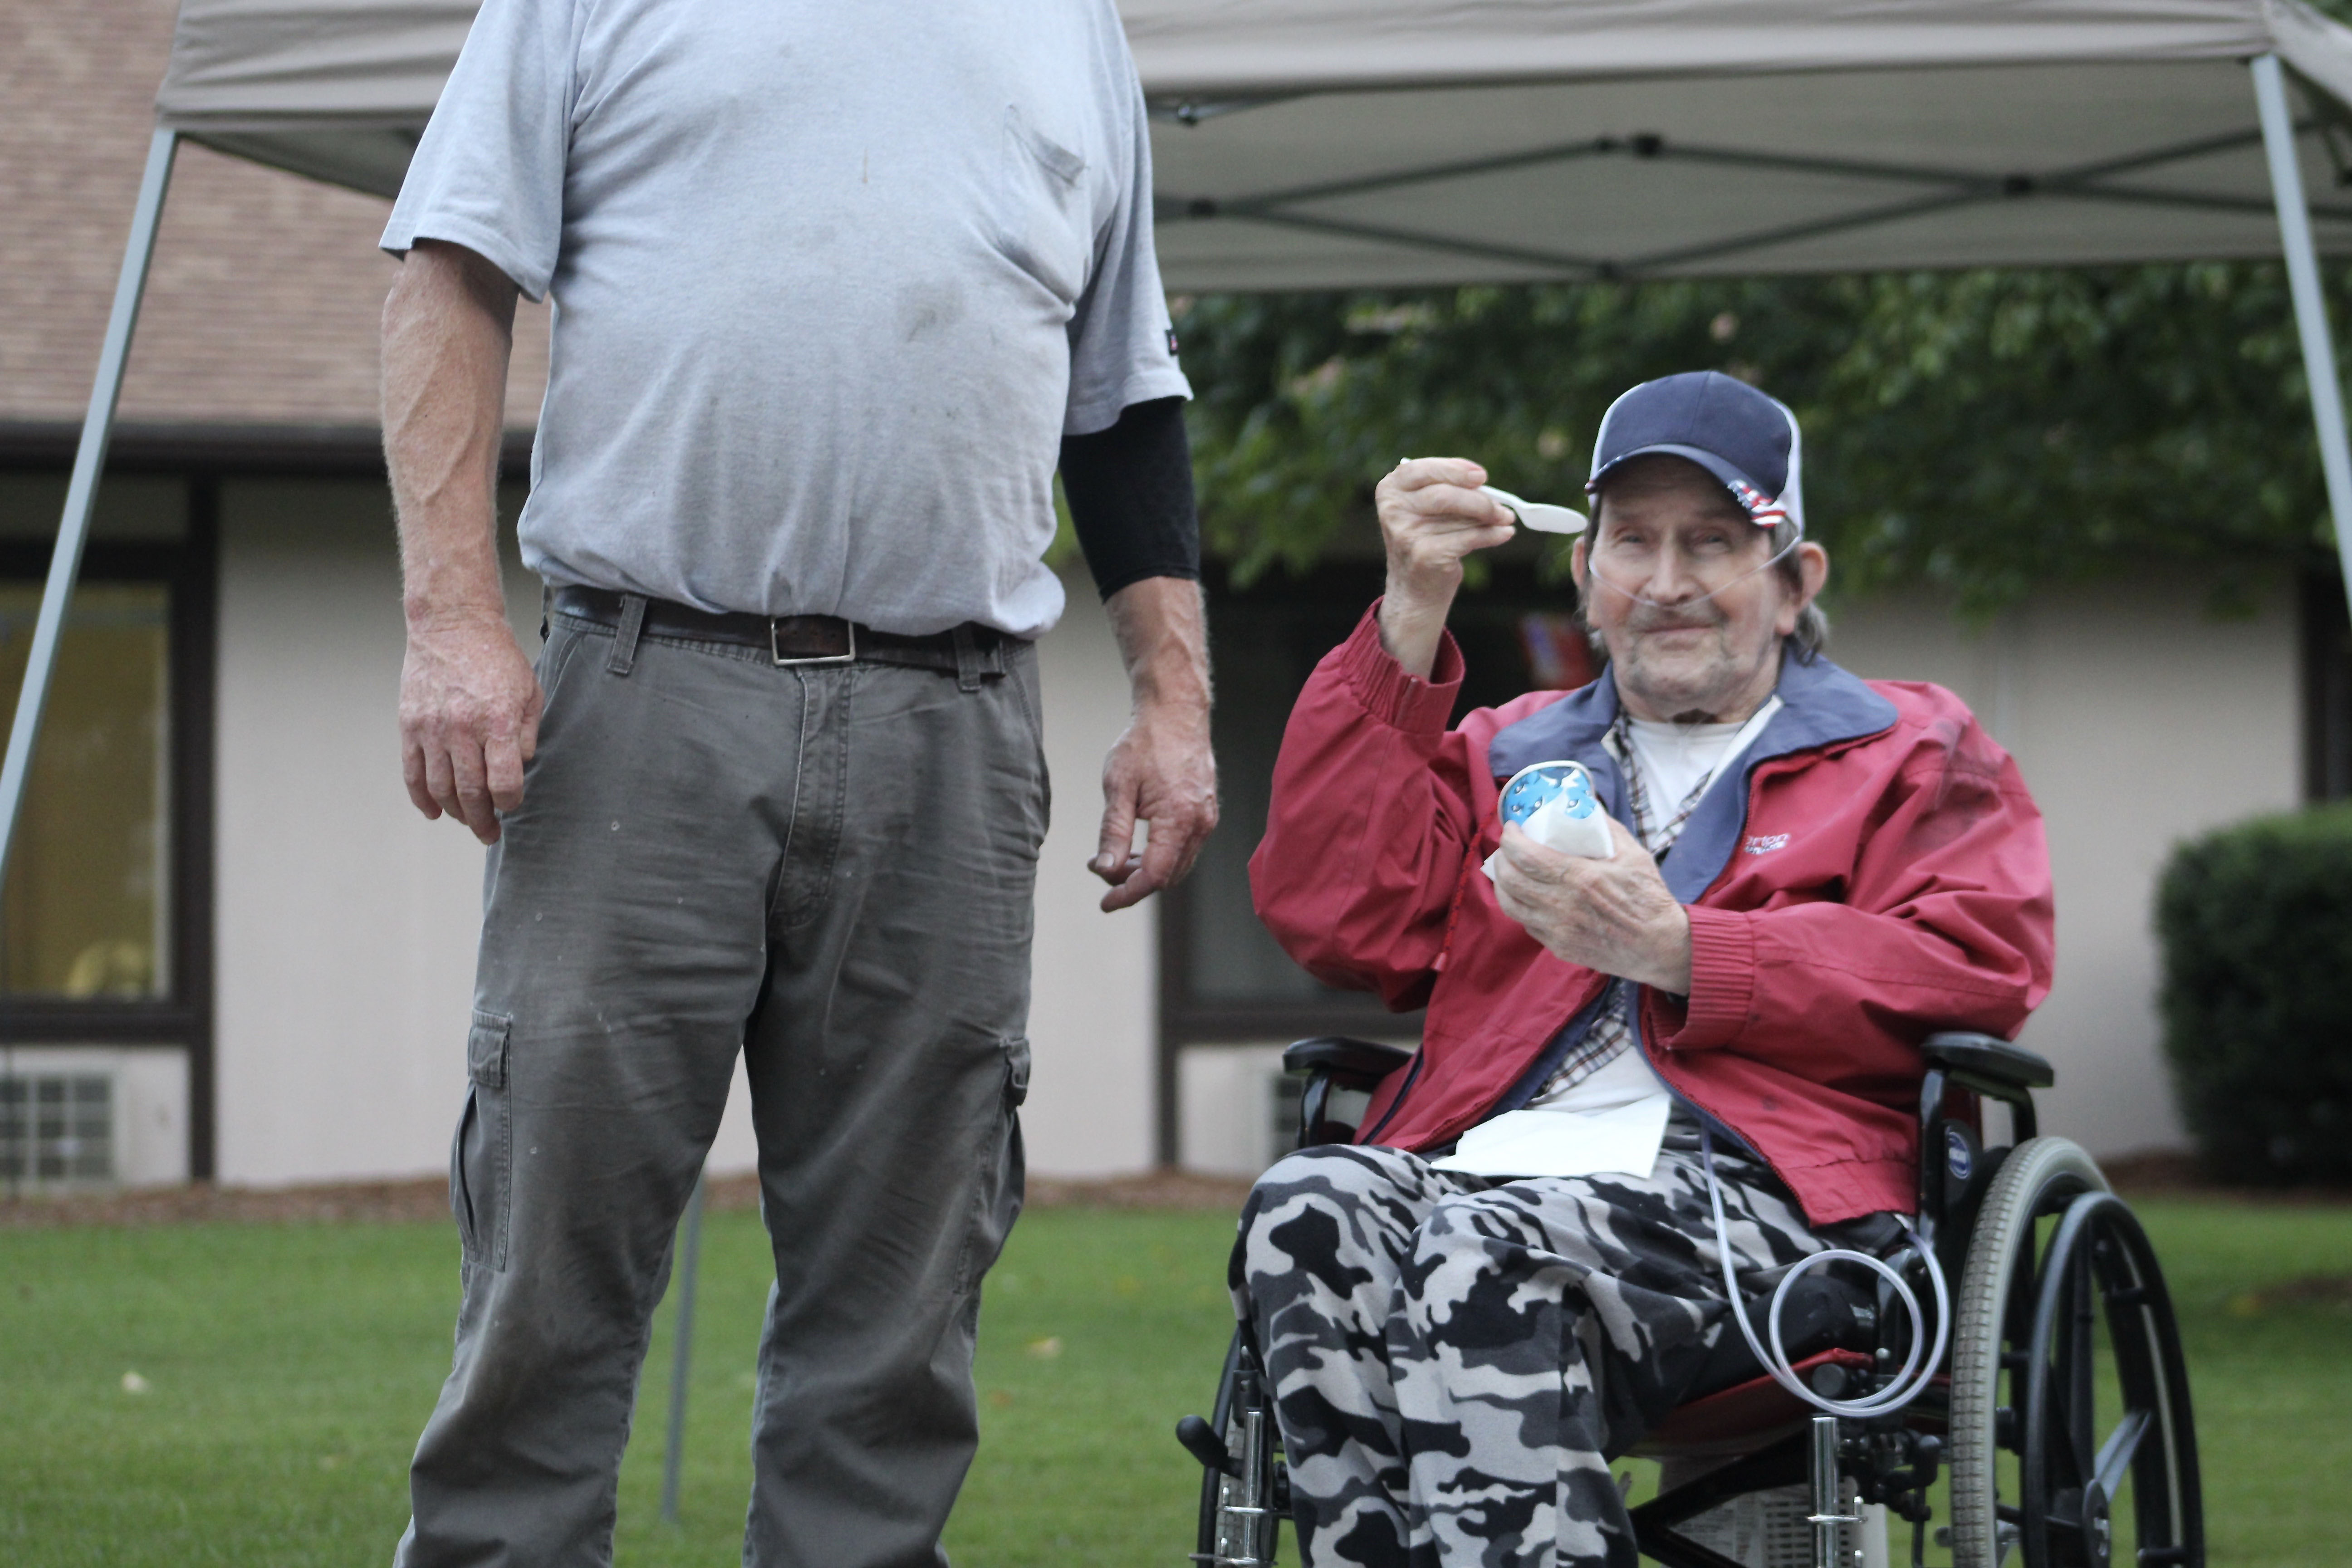 A Brian Center resident enjoys a frozen treat from Fire & Ice Snowballs & Ice Cream as he waits for the fireworks show to begin on Thursday, Aug. 20. (MNJ Photo/Juliana Walker)